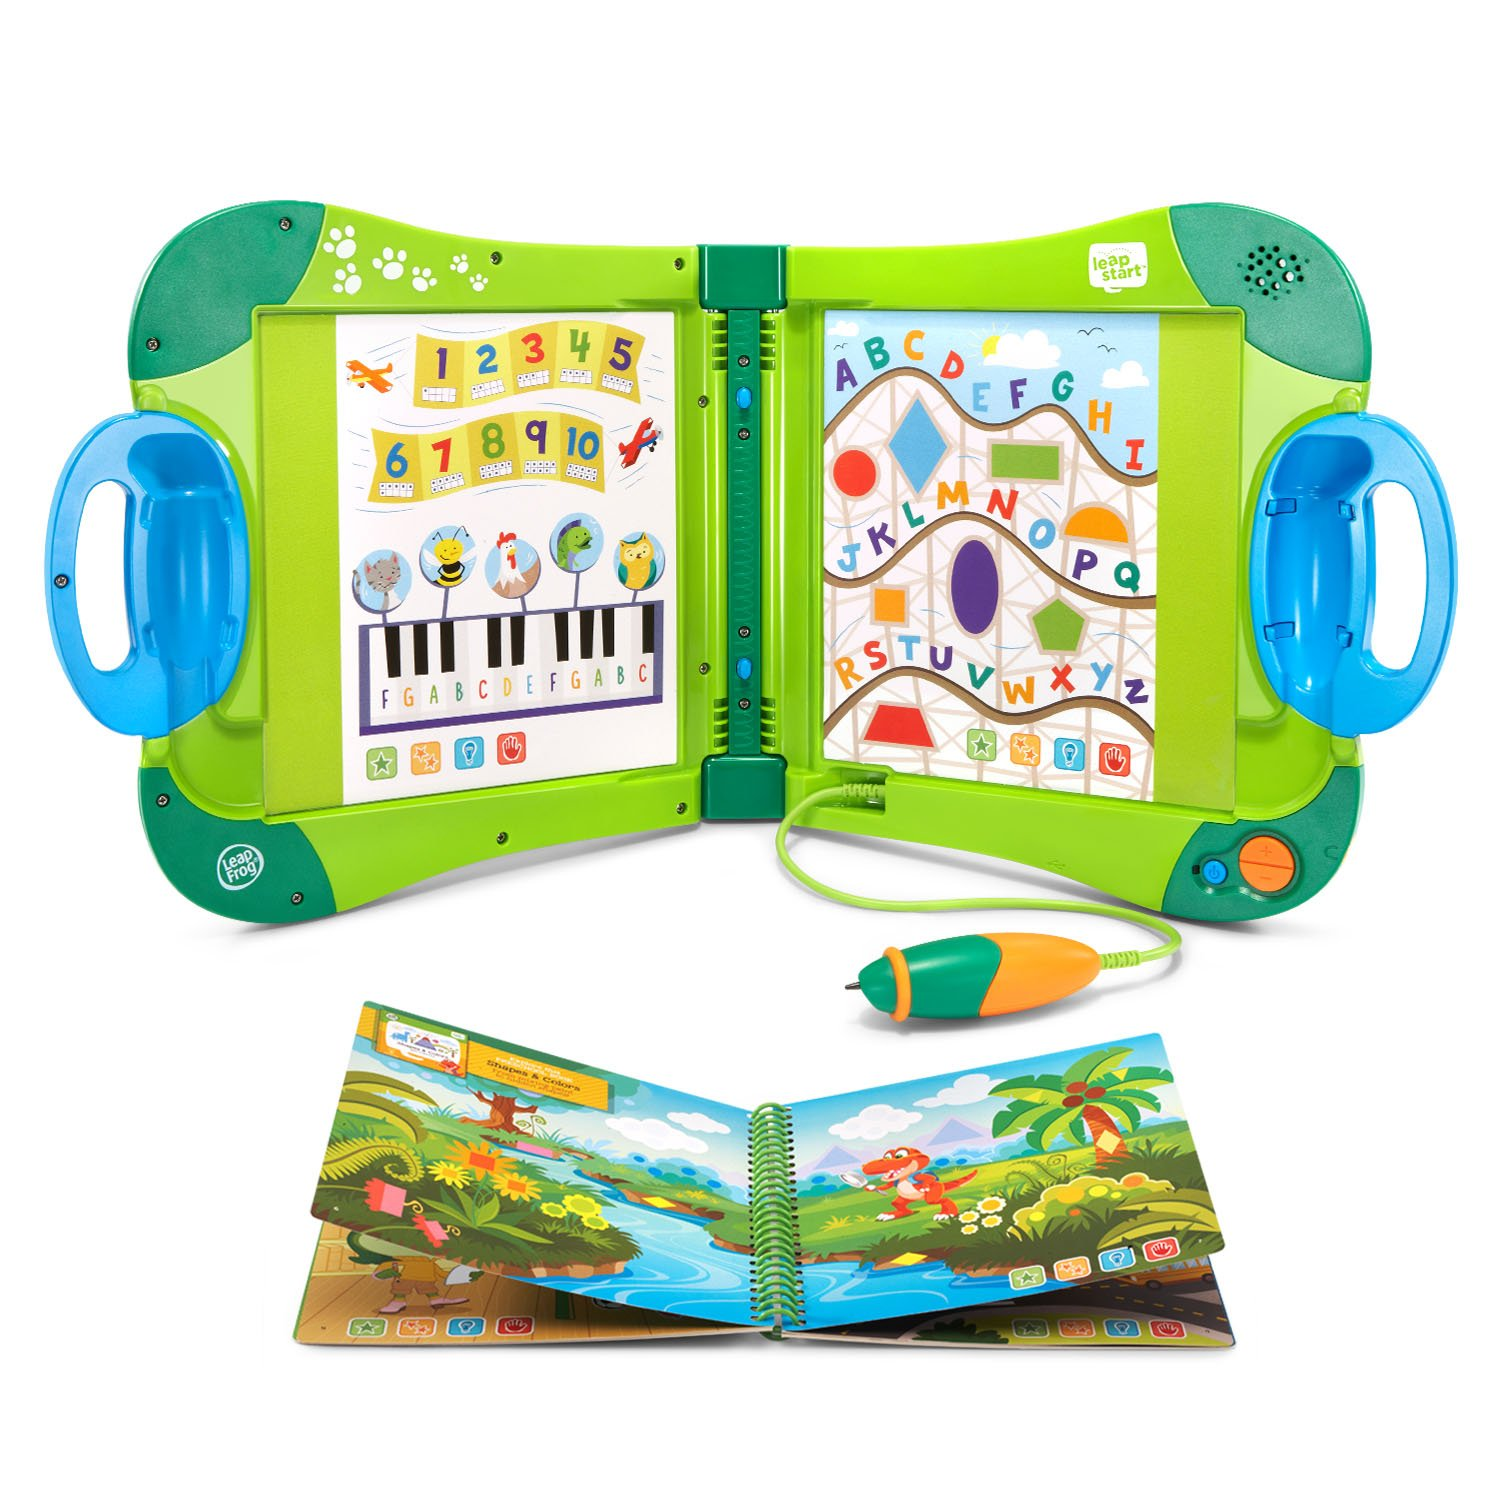 LeapFrog LeapStart Interactive Learning System Preschool and Pre-Kindergarten My Pal Scout by LeapFrog (Image #3)